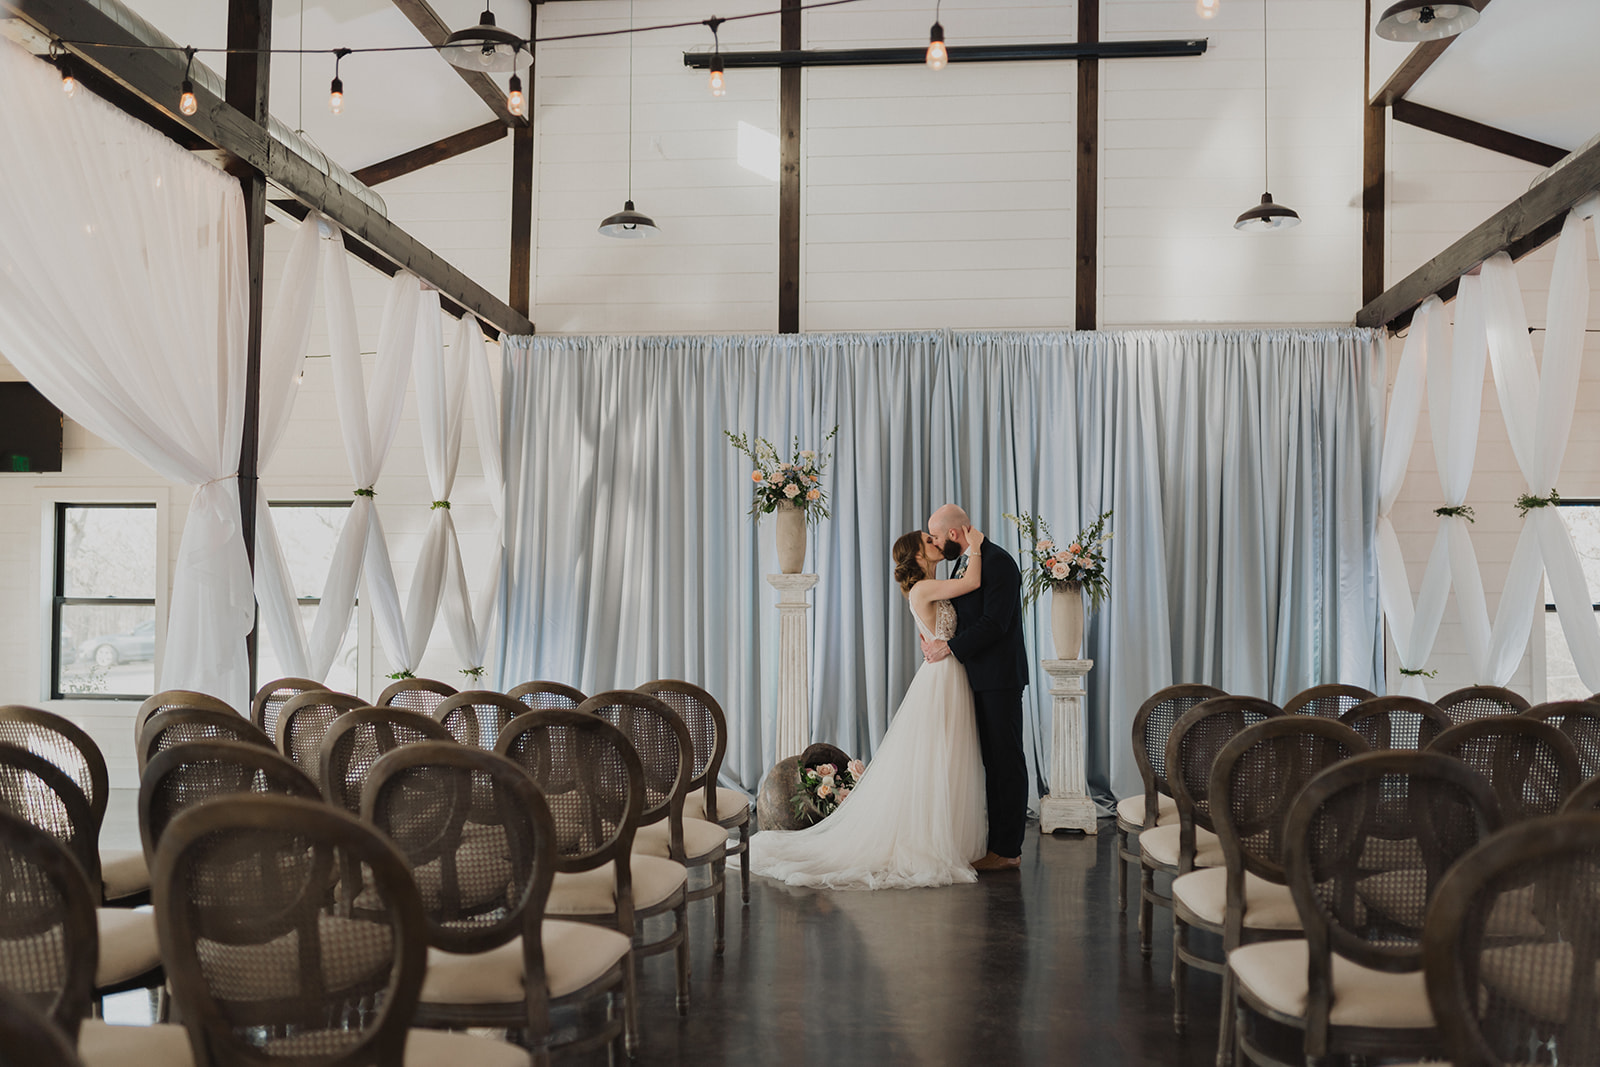 Indoor Ceremony Tulsa Wedding Venue Dream Point Ranch 24.jpg